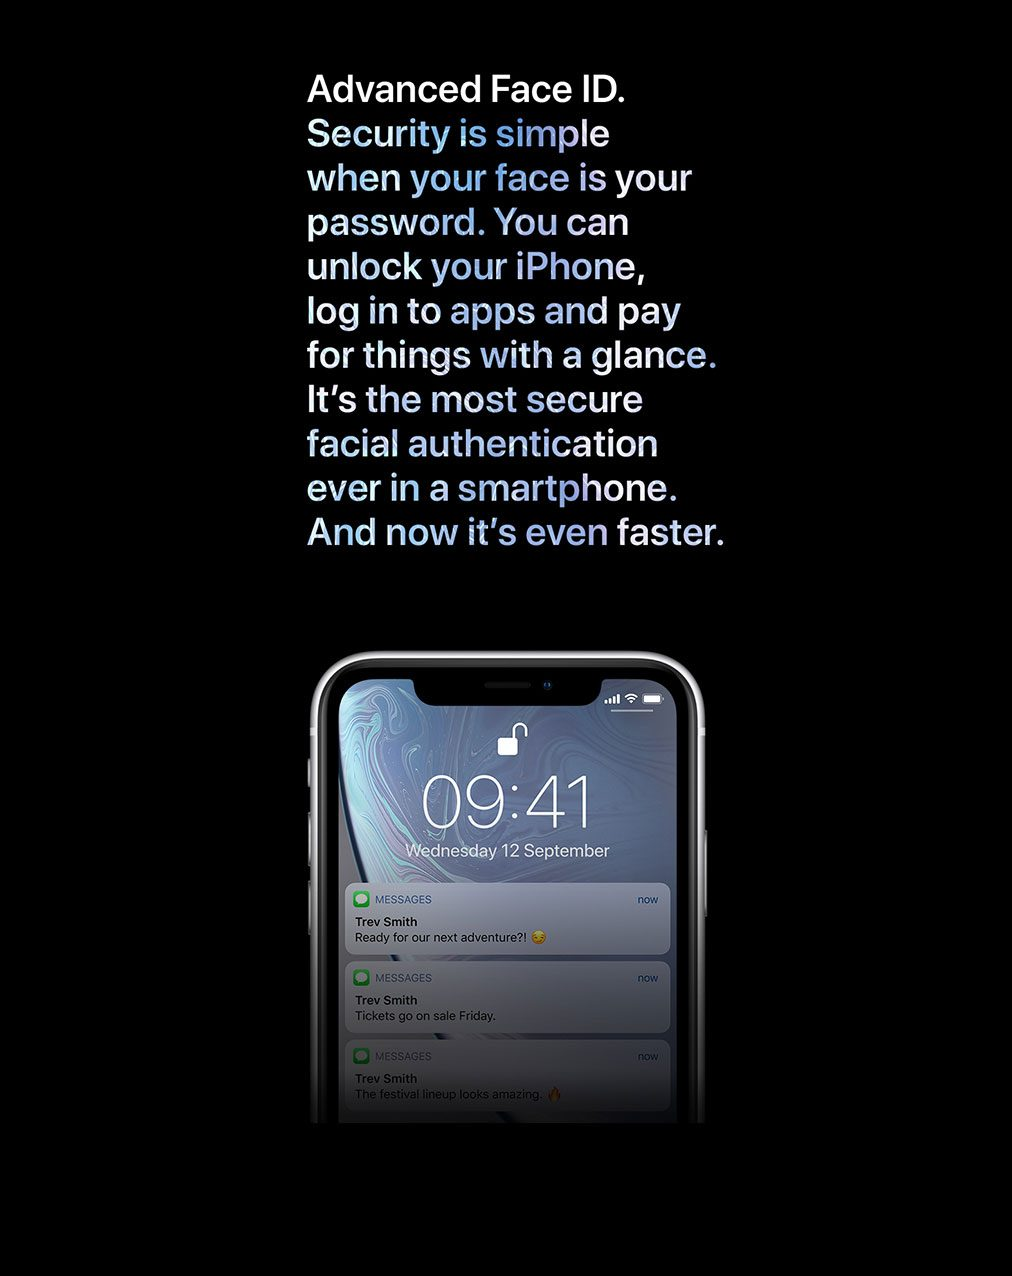 iPhone XR. Advanced Face ID.